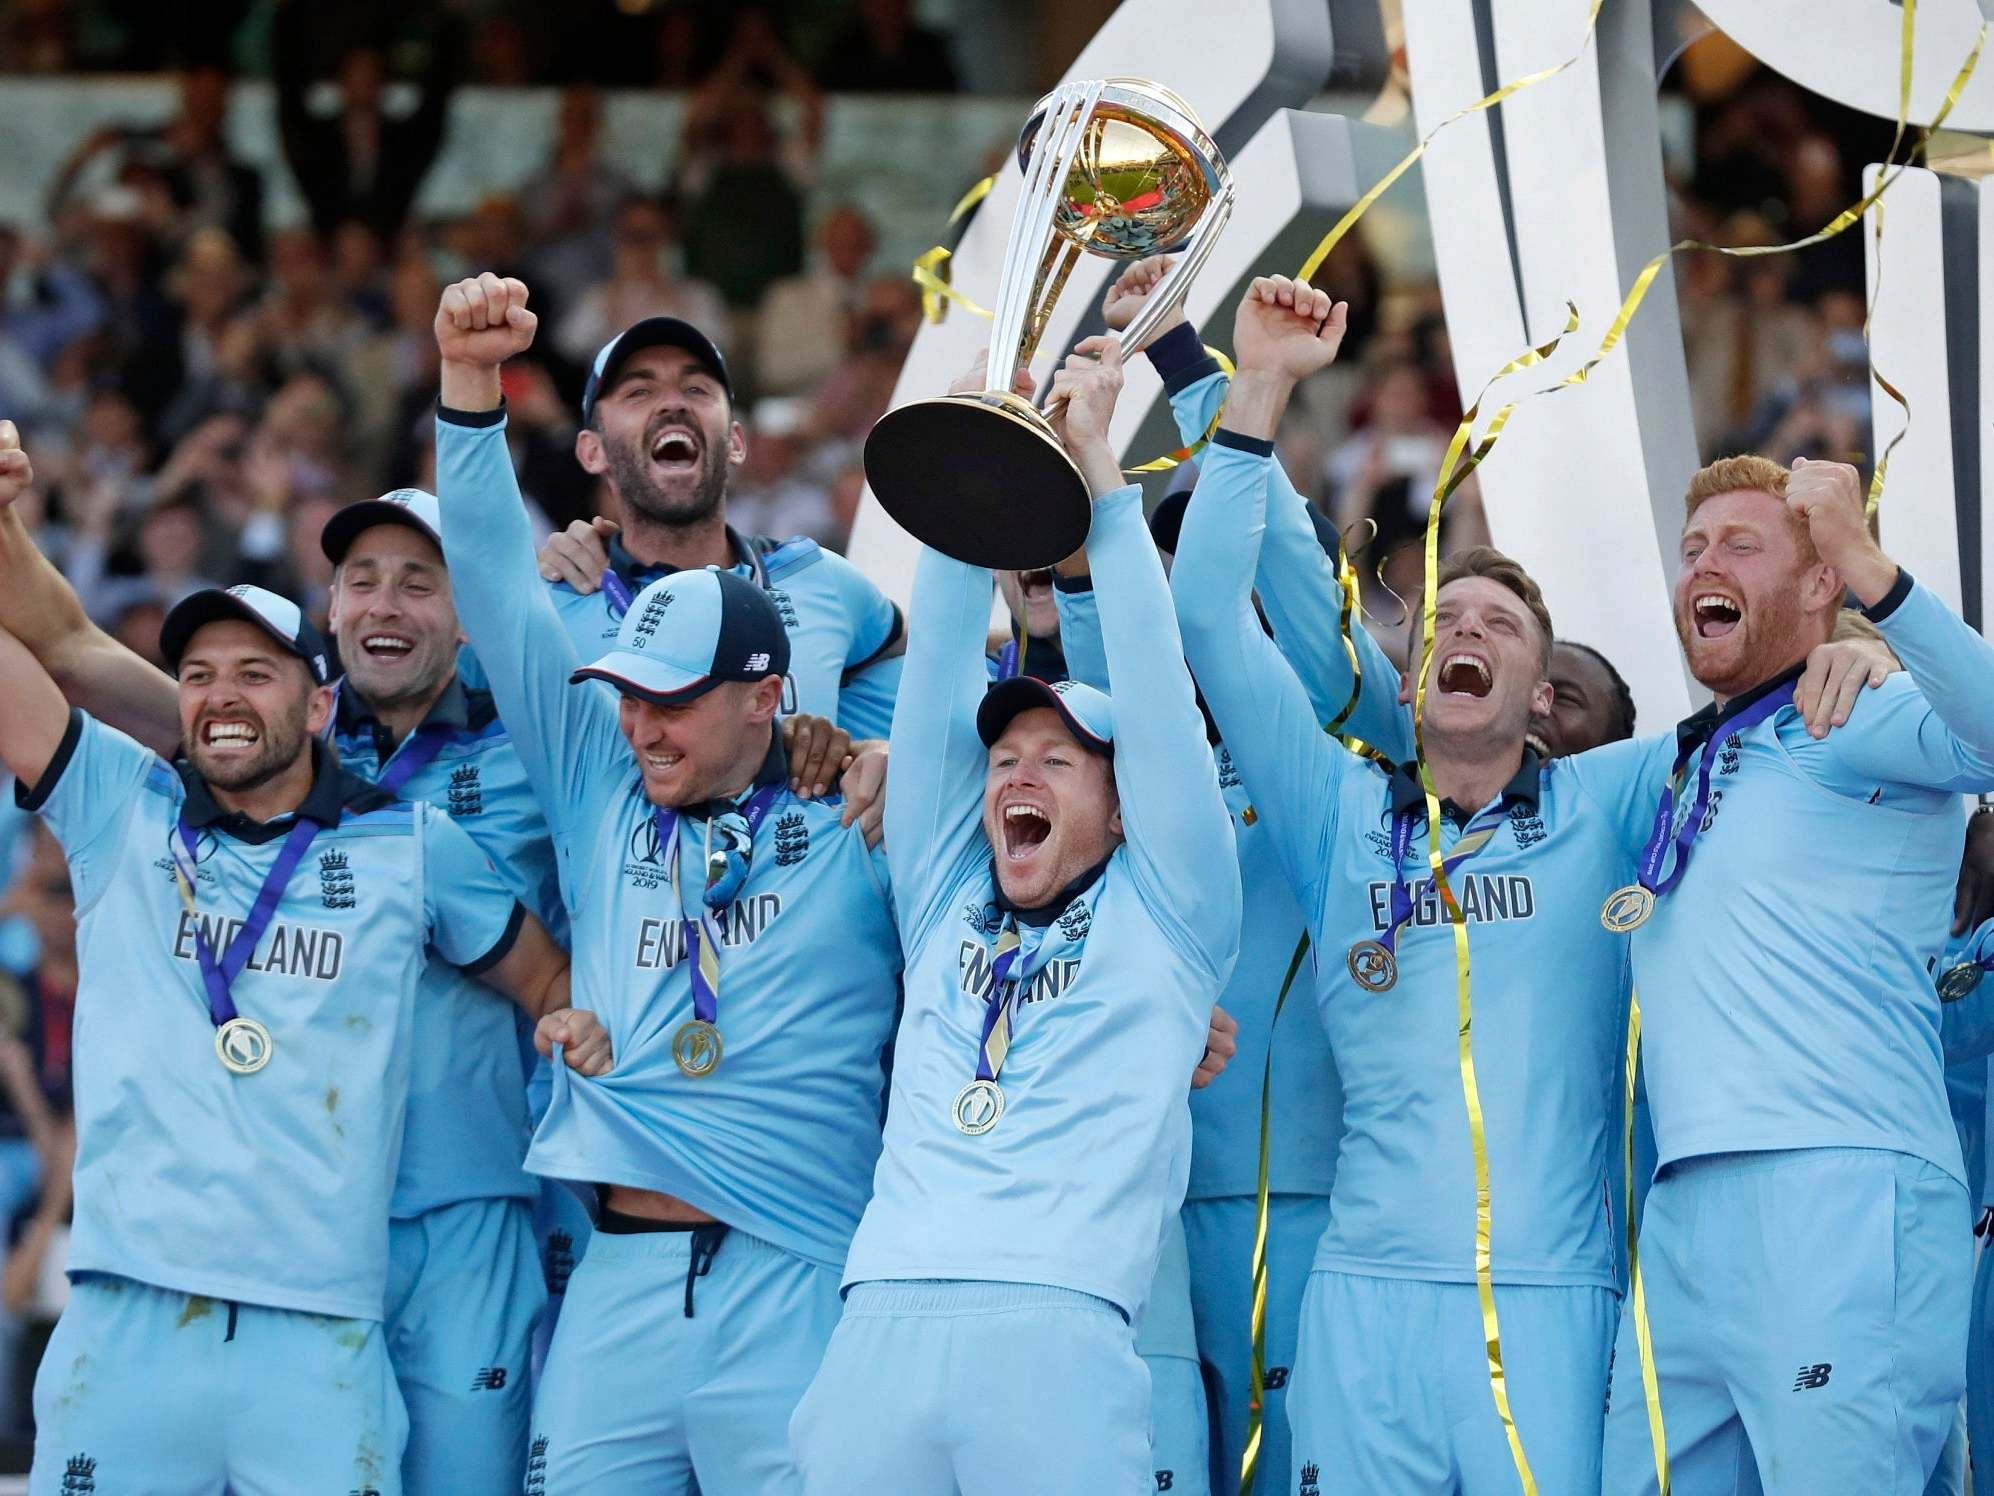 Tory minister refuses to commit to free-to-air 'crown jewel' status for England cricket matches after World Cup win